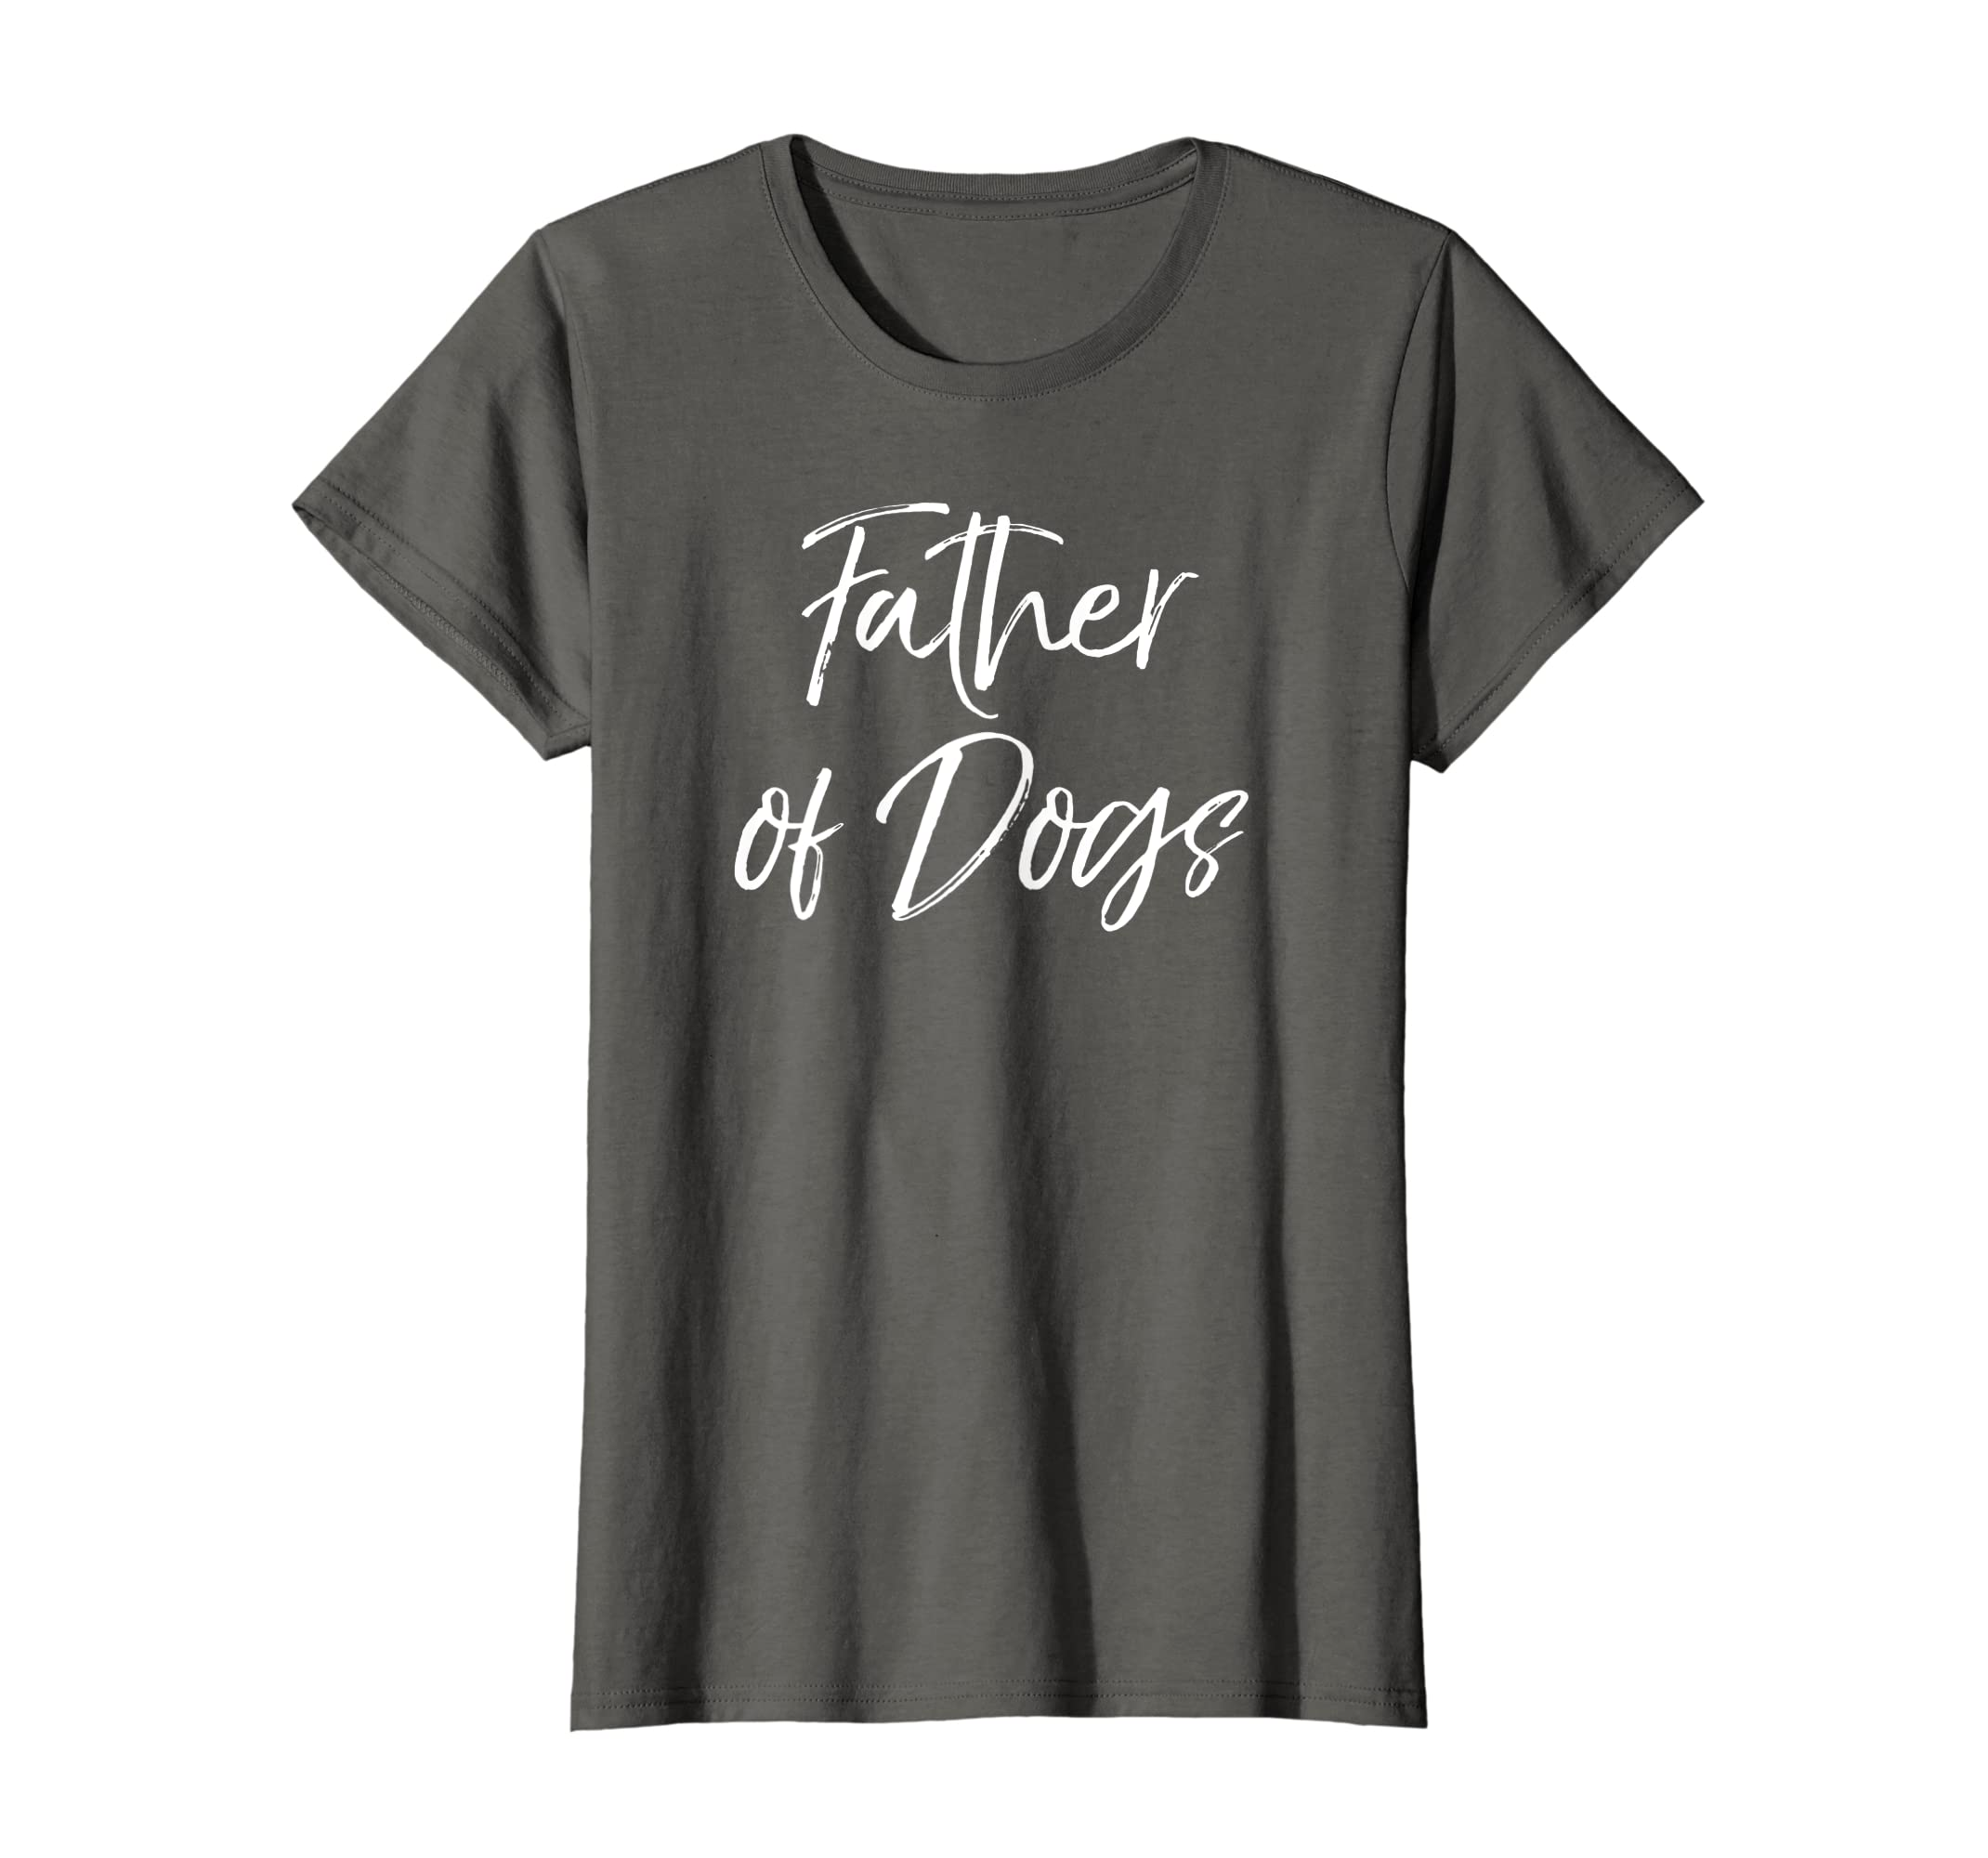 5981efba Amazon.com: Father of Dogs Shirt for Men Funny Dog Dad T-Shirt for Boys:  Clothing